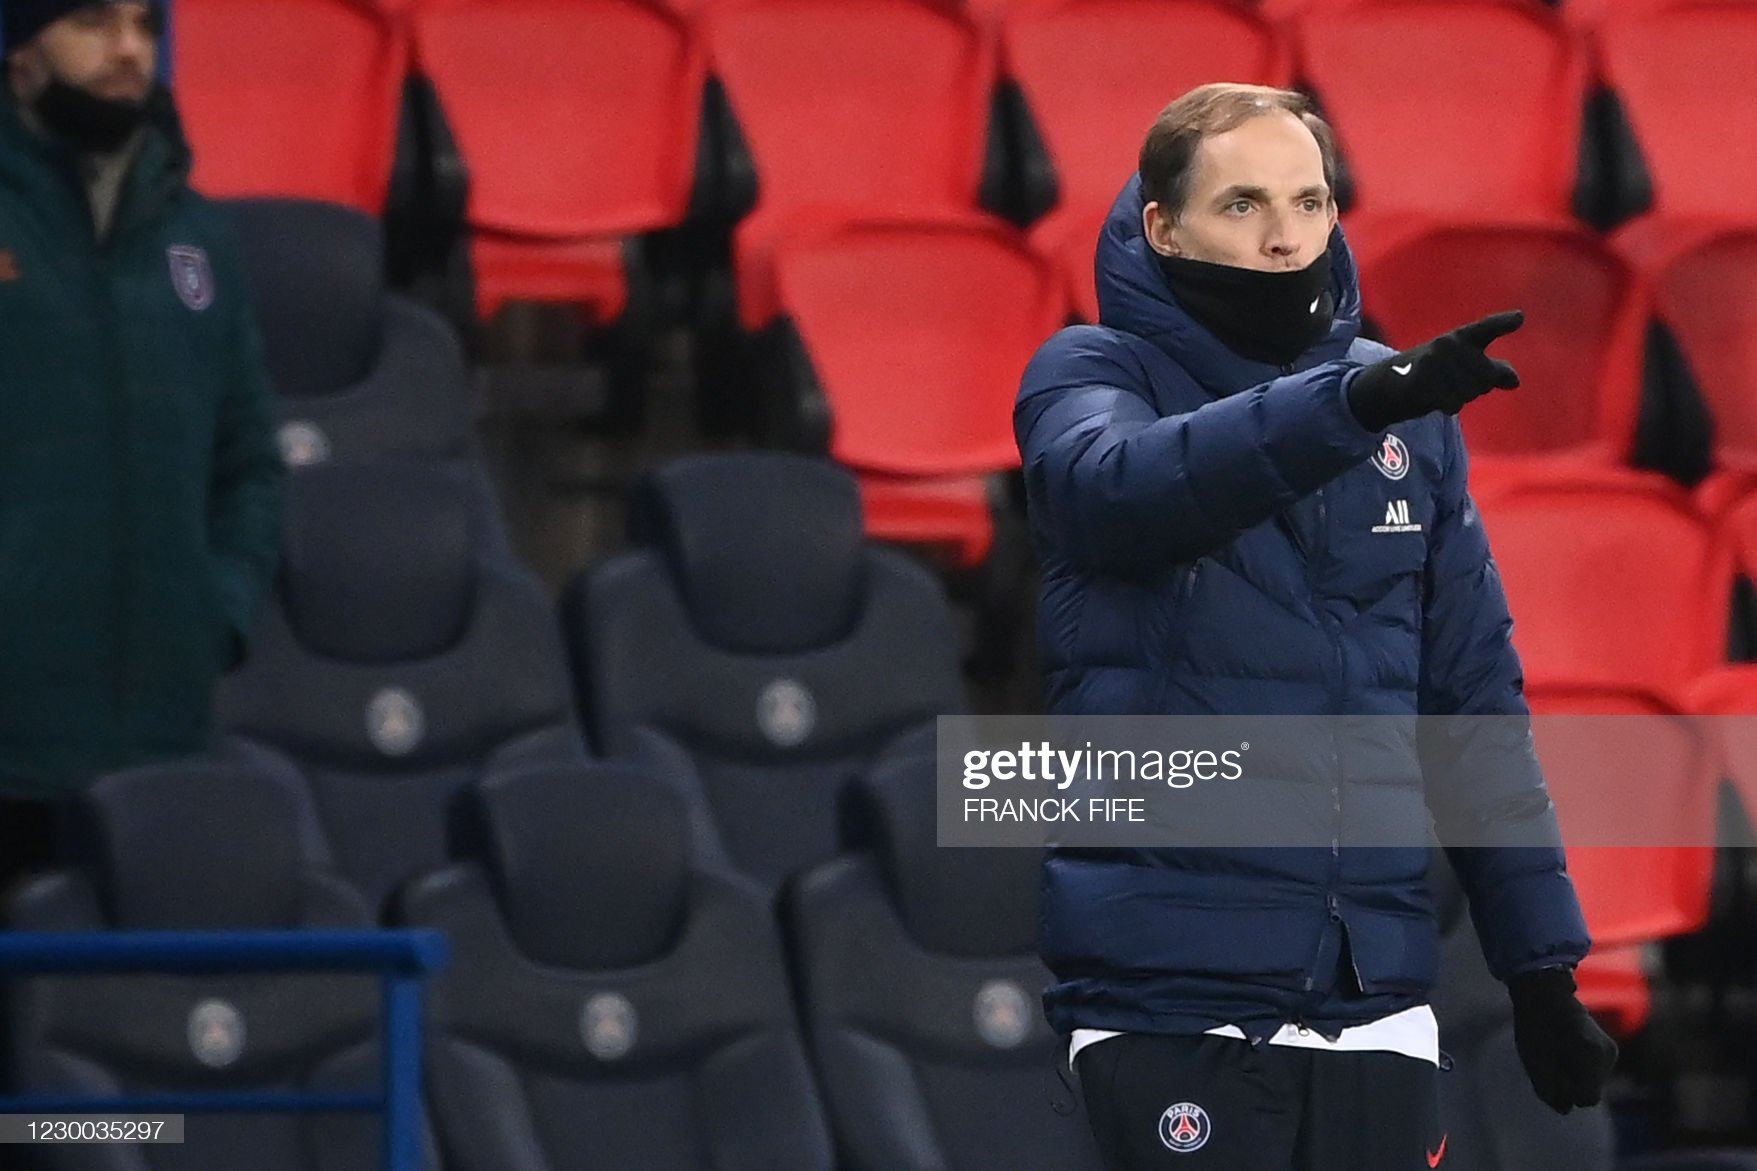 Thomas Tuchel looks to be a shrewd appointment for Chelsea